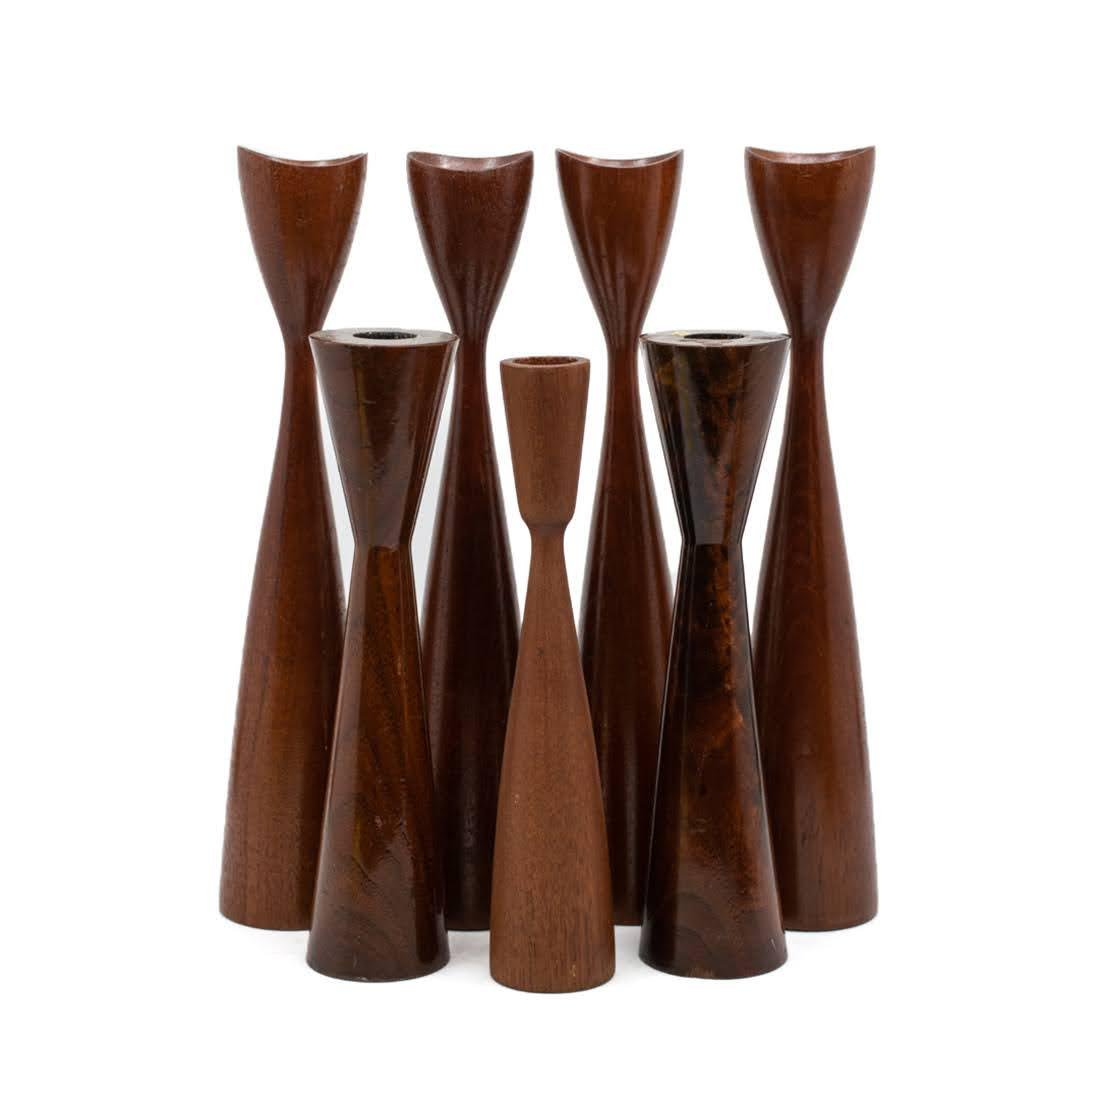 MCM 7 Piece Danish Tulip Form Candle Holders